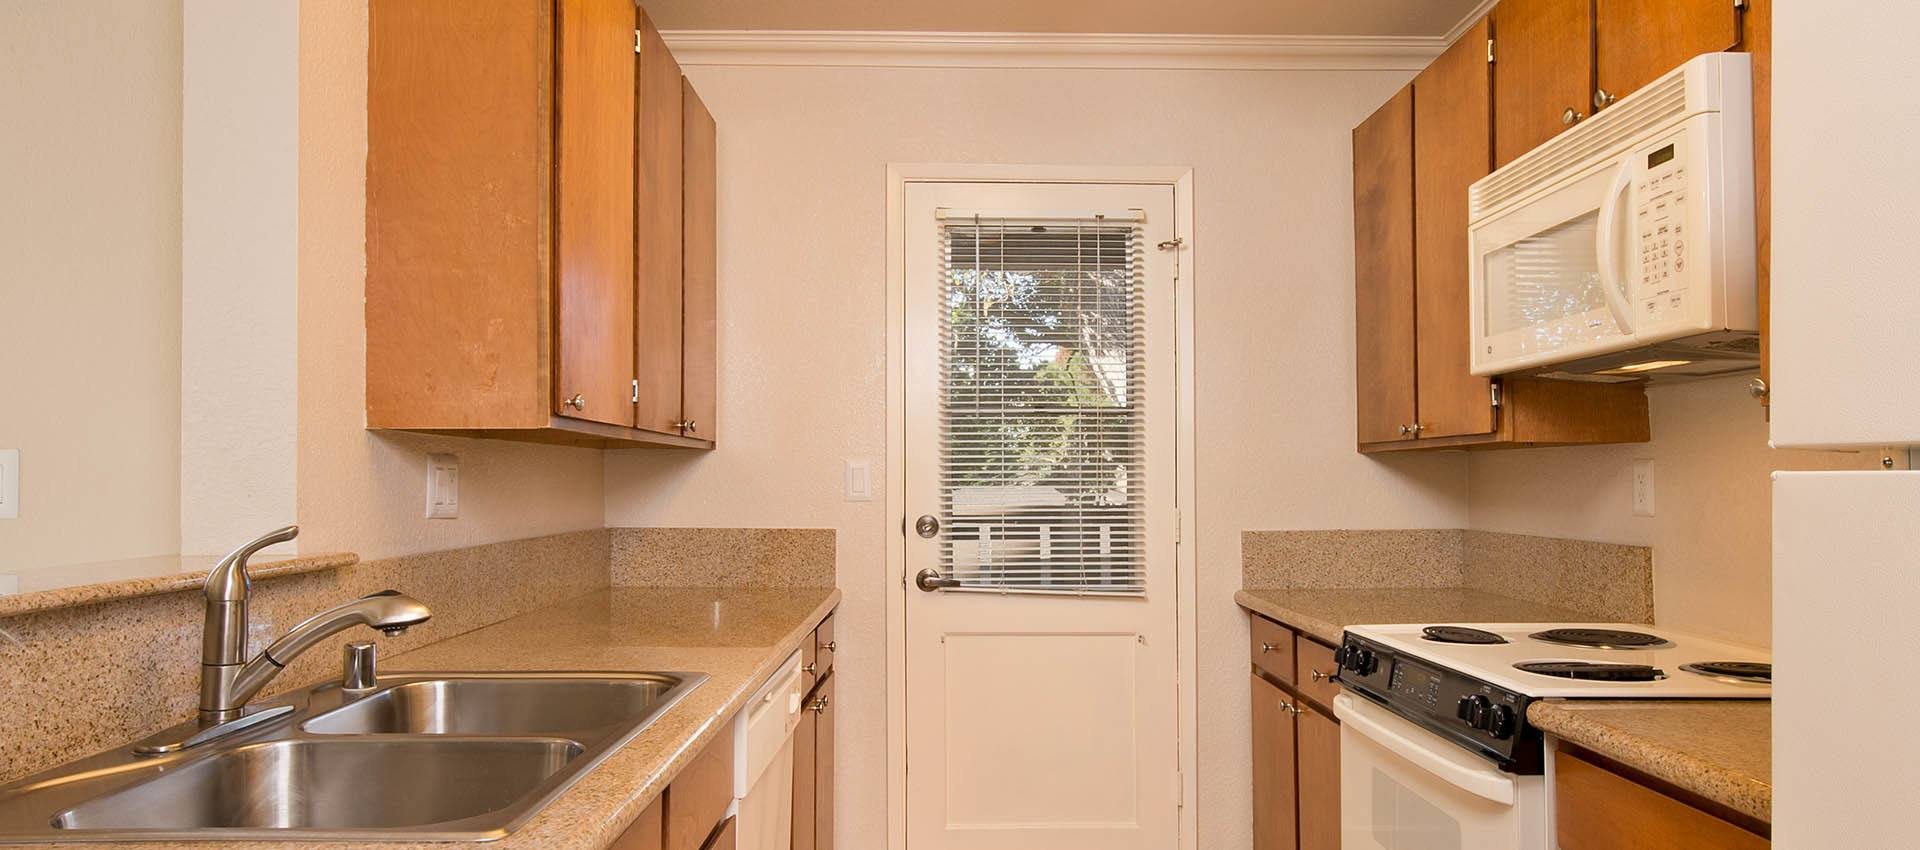 Standard Kitchen at Seventeen Mile Drive Village Apartment Homes in Pacific Grove